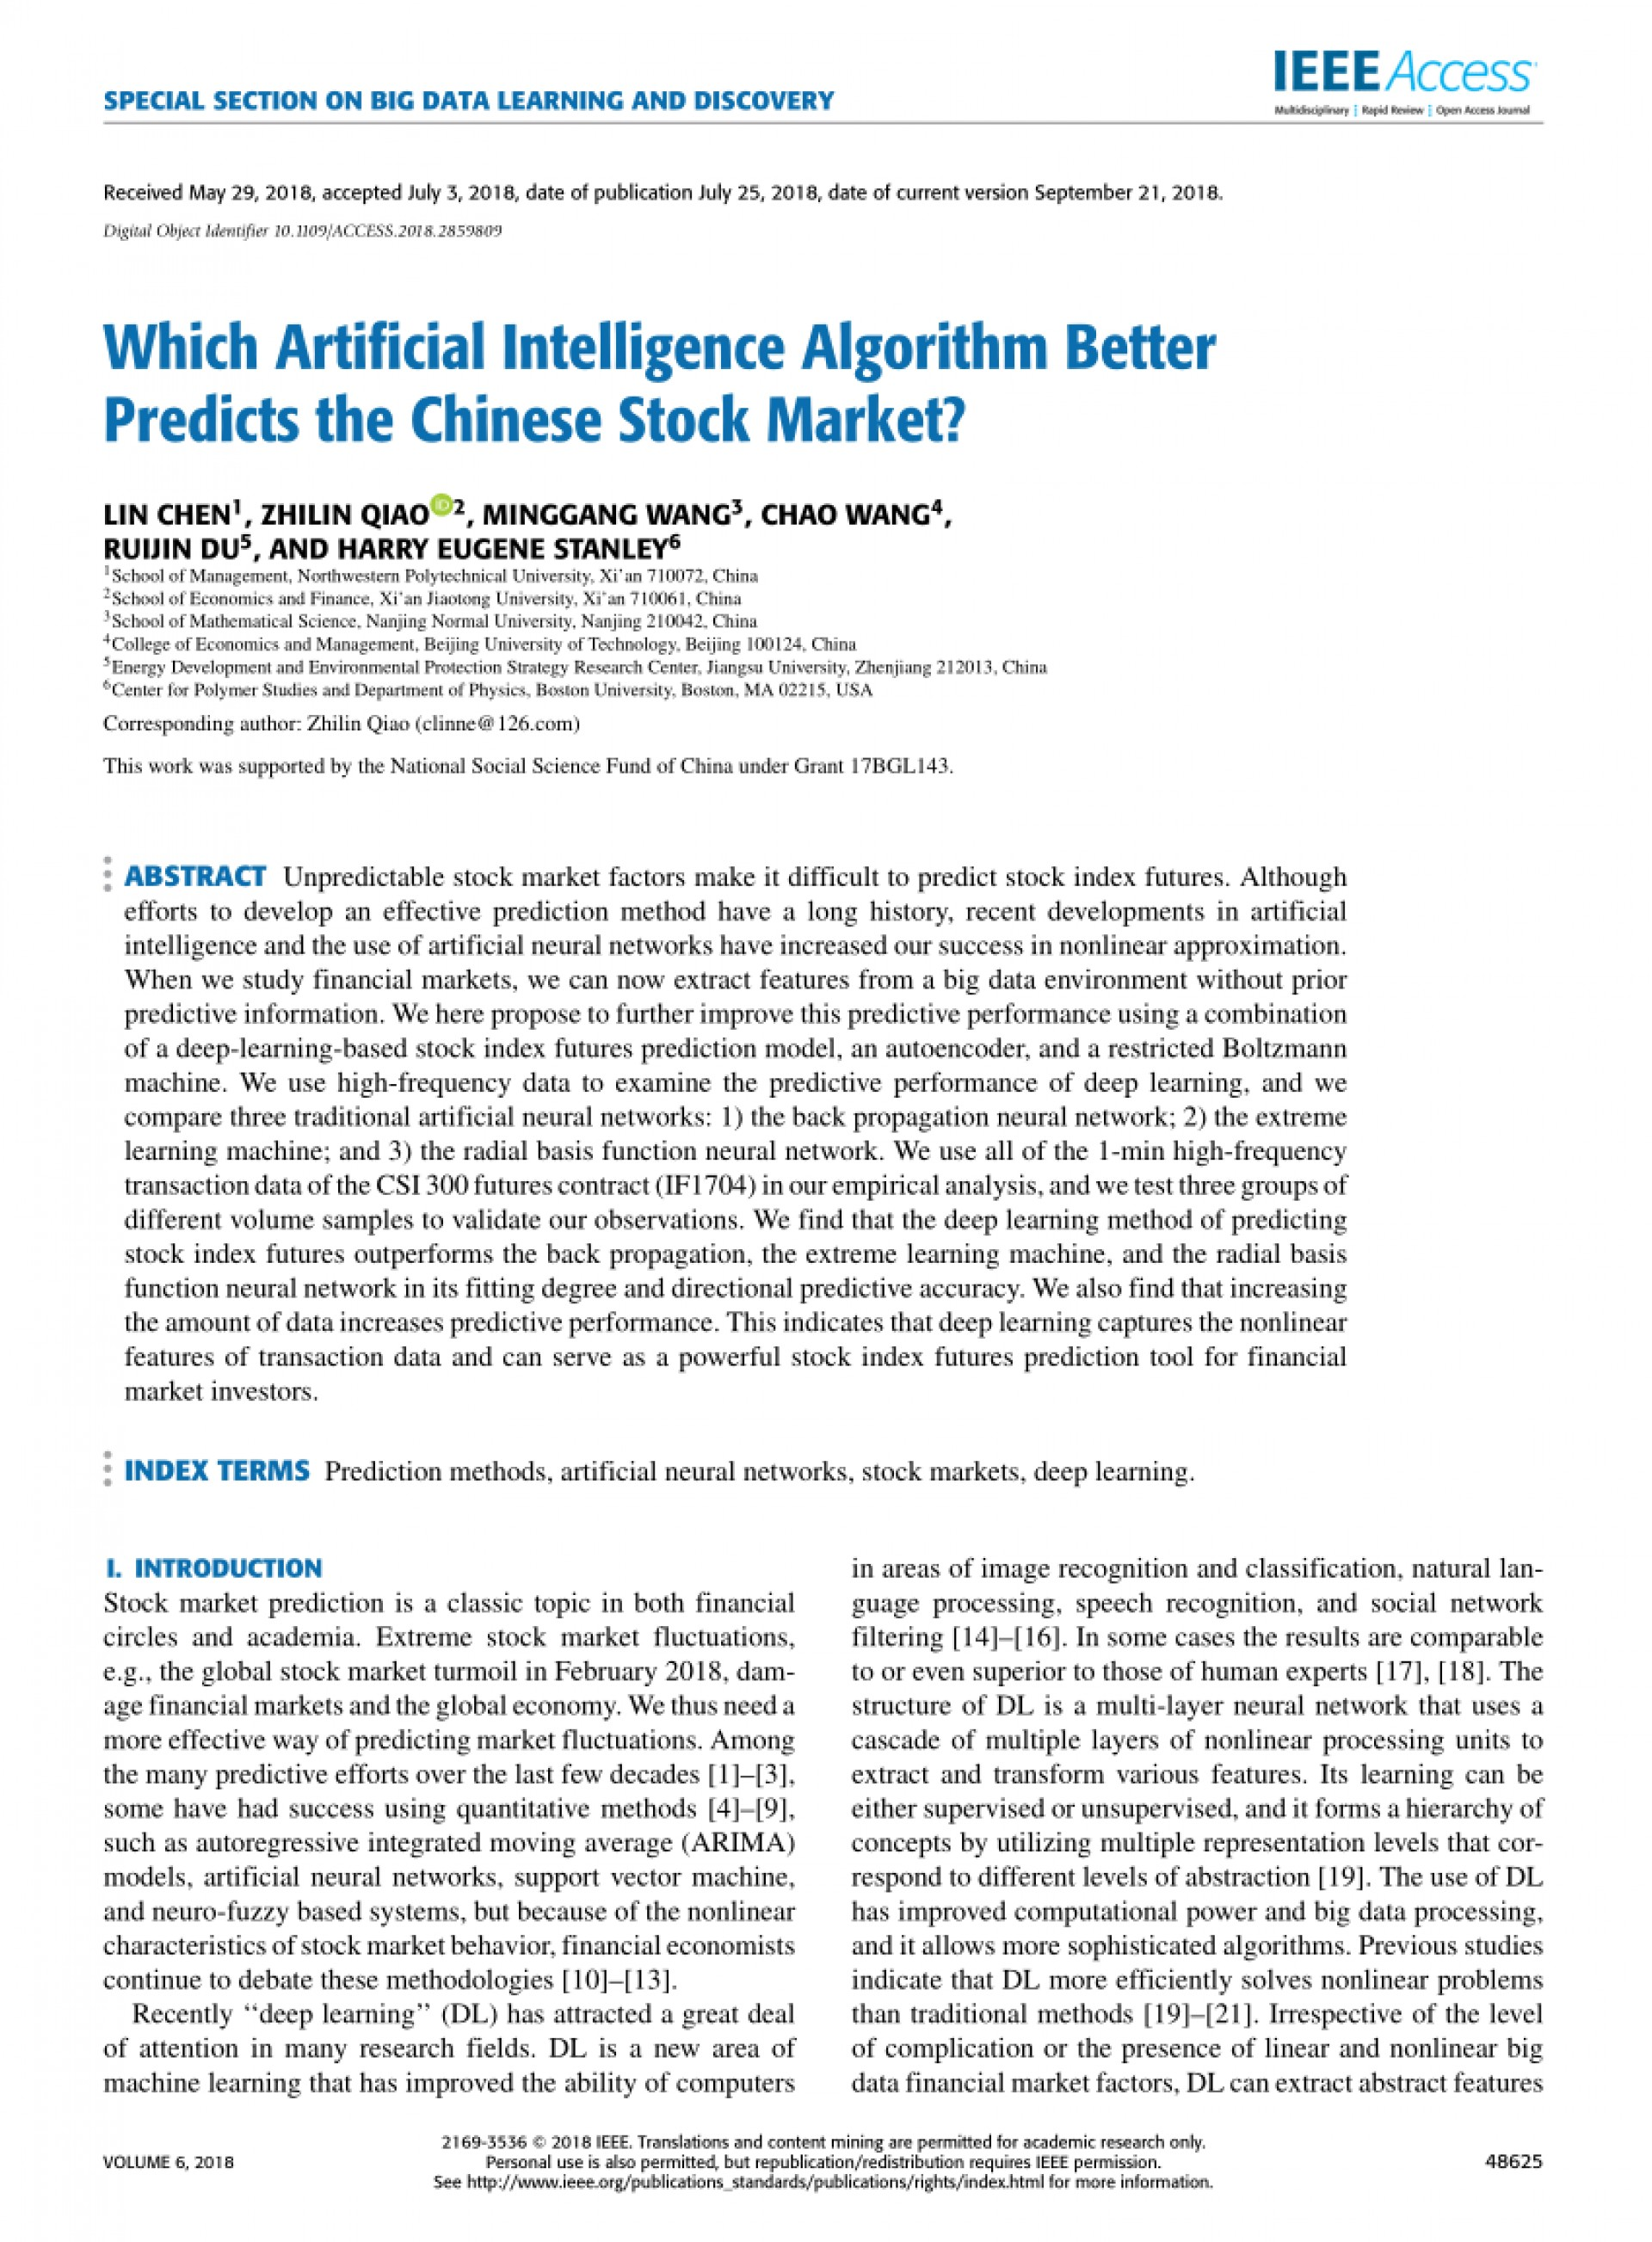 005 Artificial Intelligence Research Paper Ieee Fantastic 2017 1920